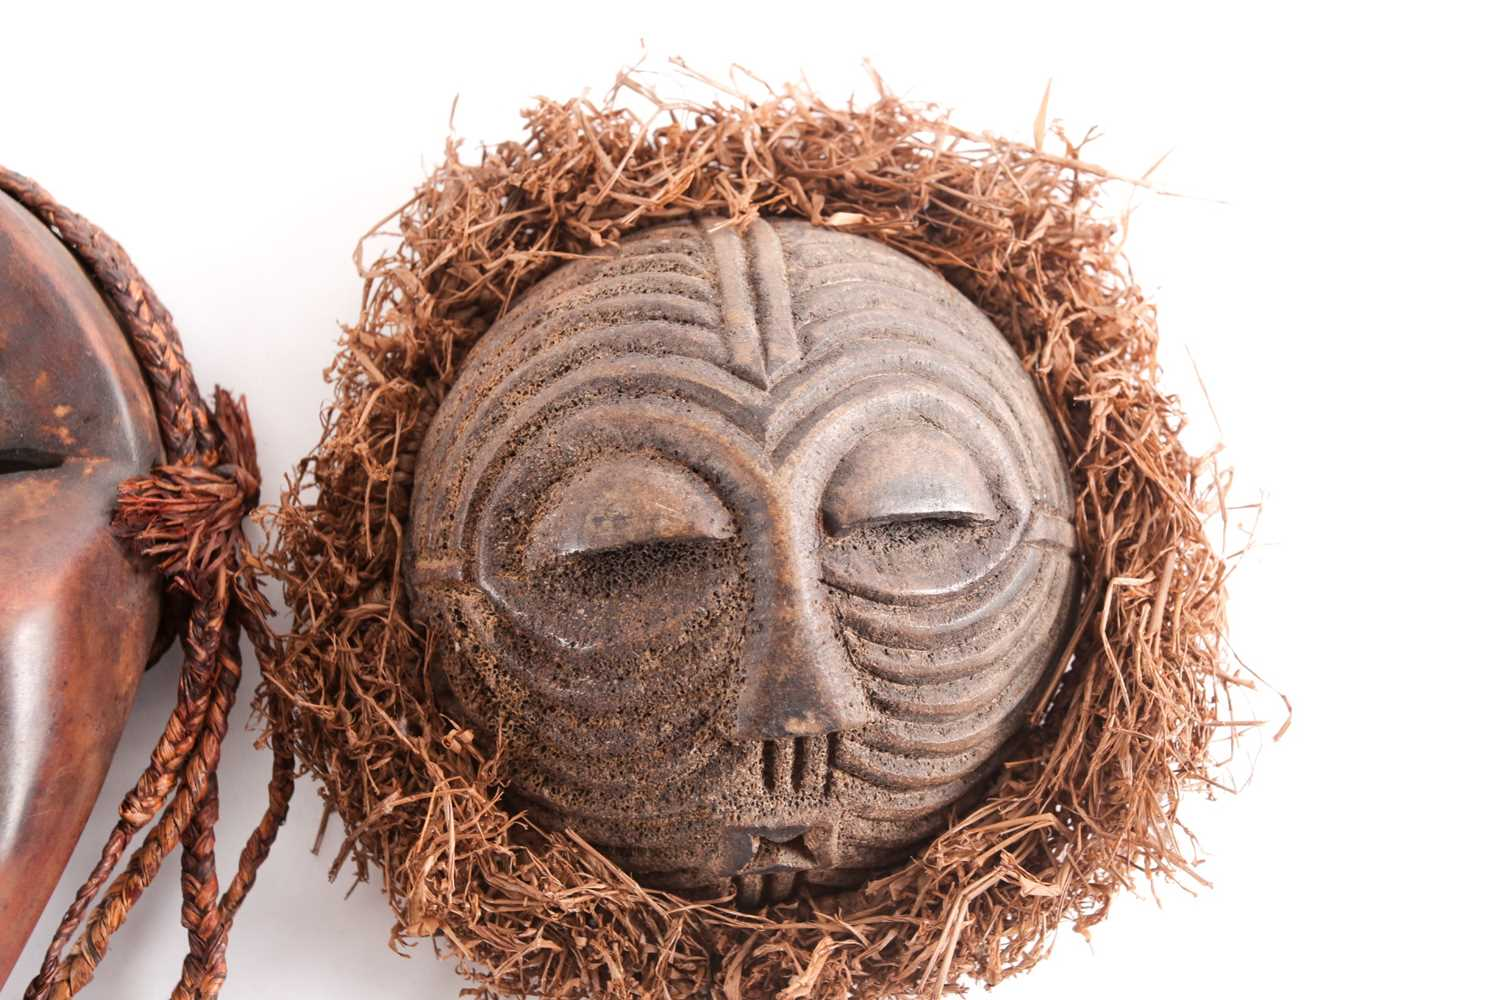 Three Dan passport masks, Ivory coast, one with long woven natural fibres above a median line - Image 6 of 6